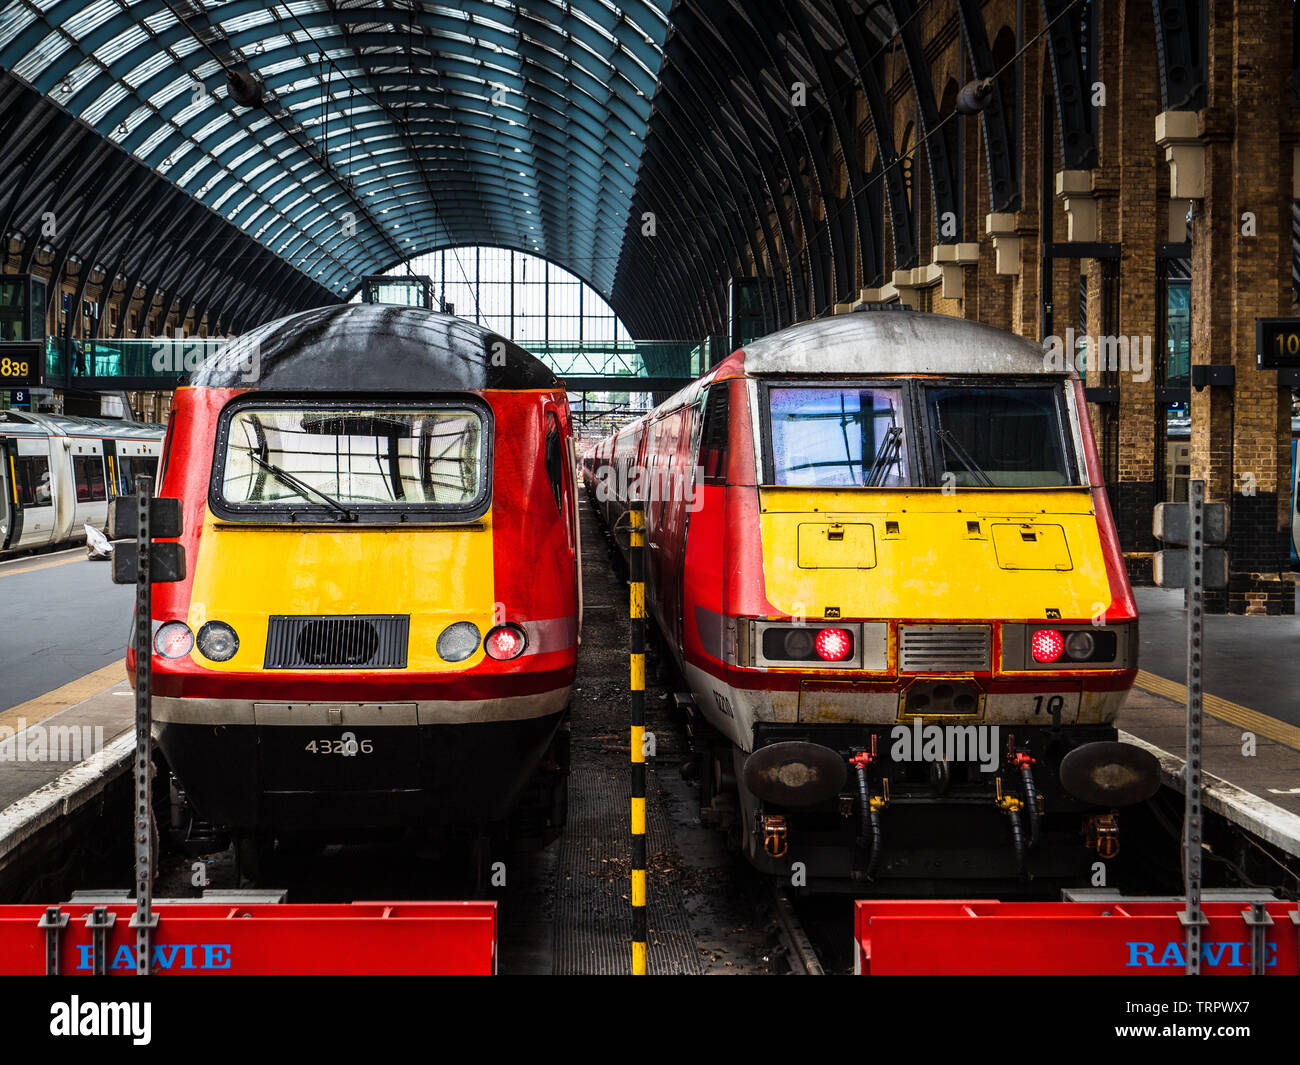 Virgin Trains Stock Photos & Virgin Trains Stock Images - Alamy